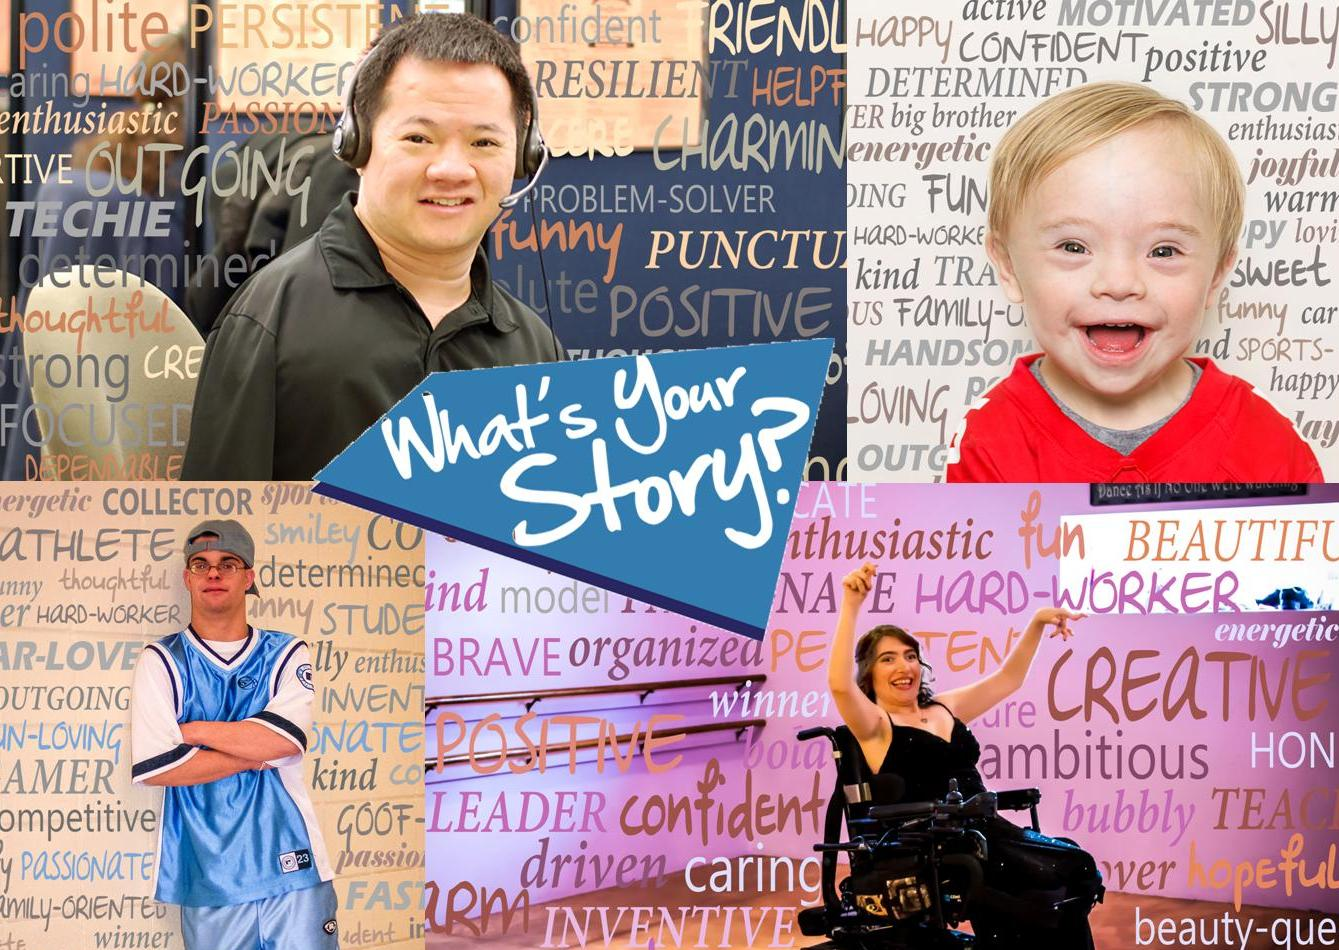 More With Developmental Disabilities >> What S Your Story National Developmental Disabilities Awareness